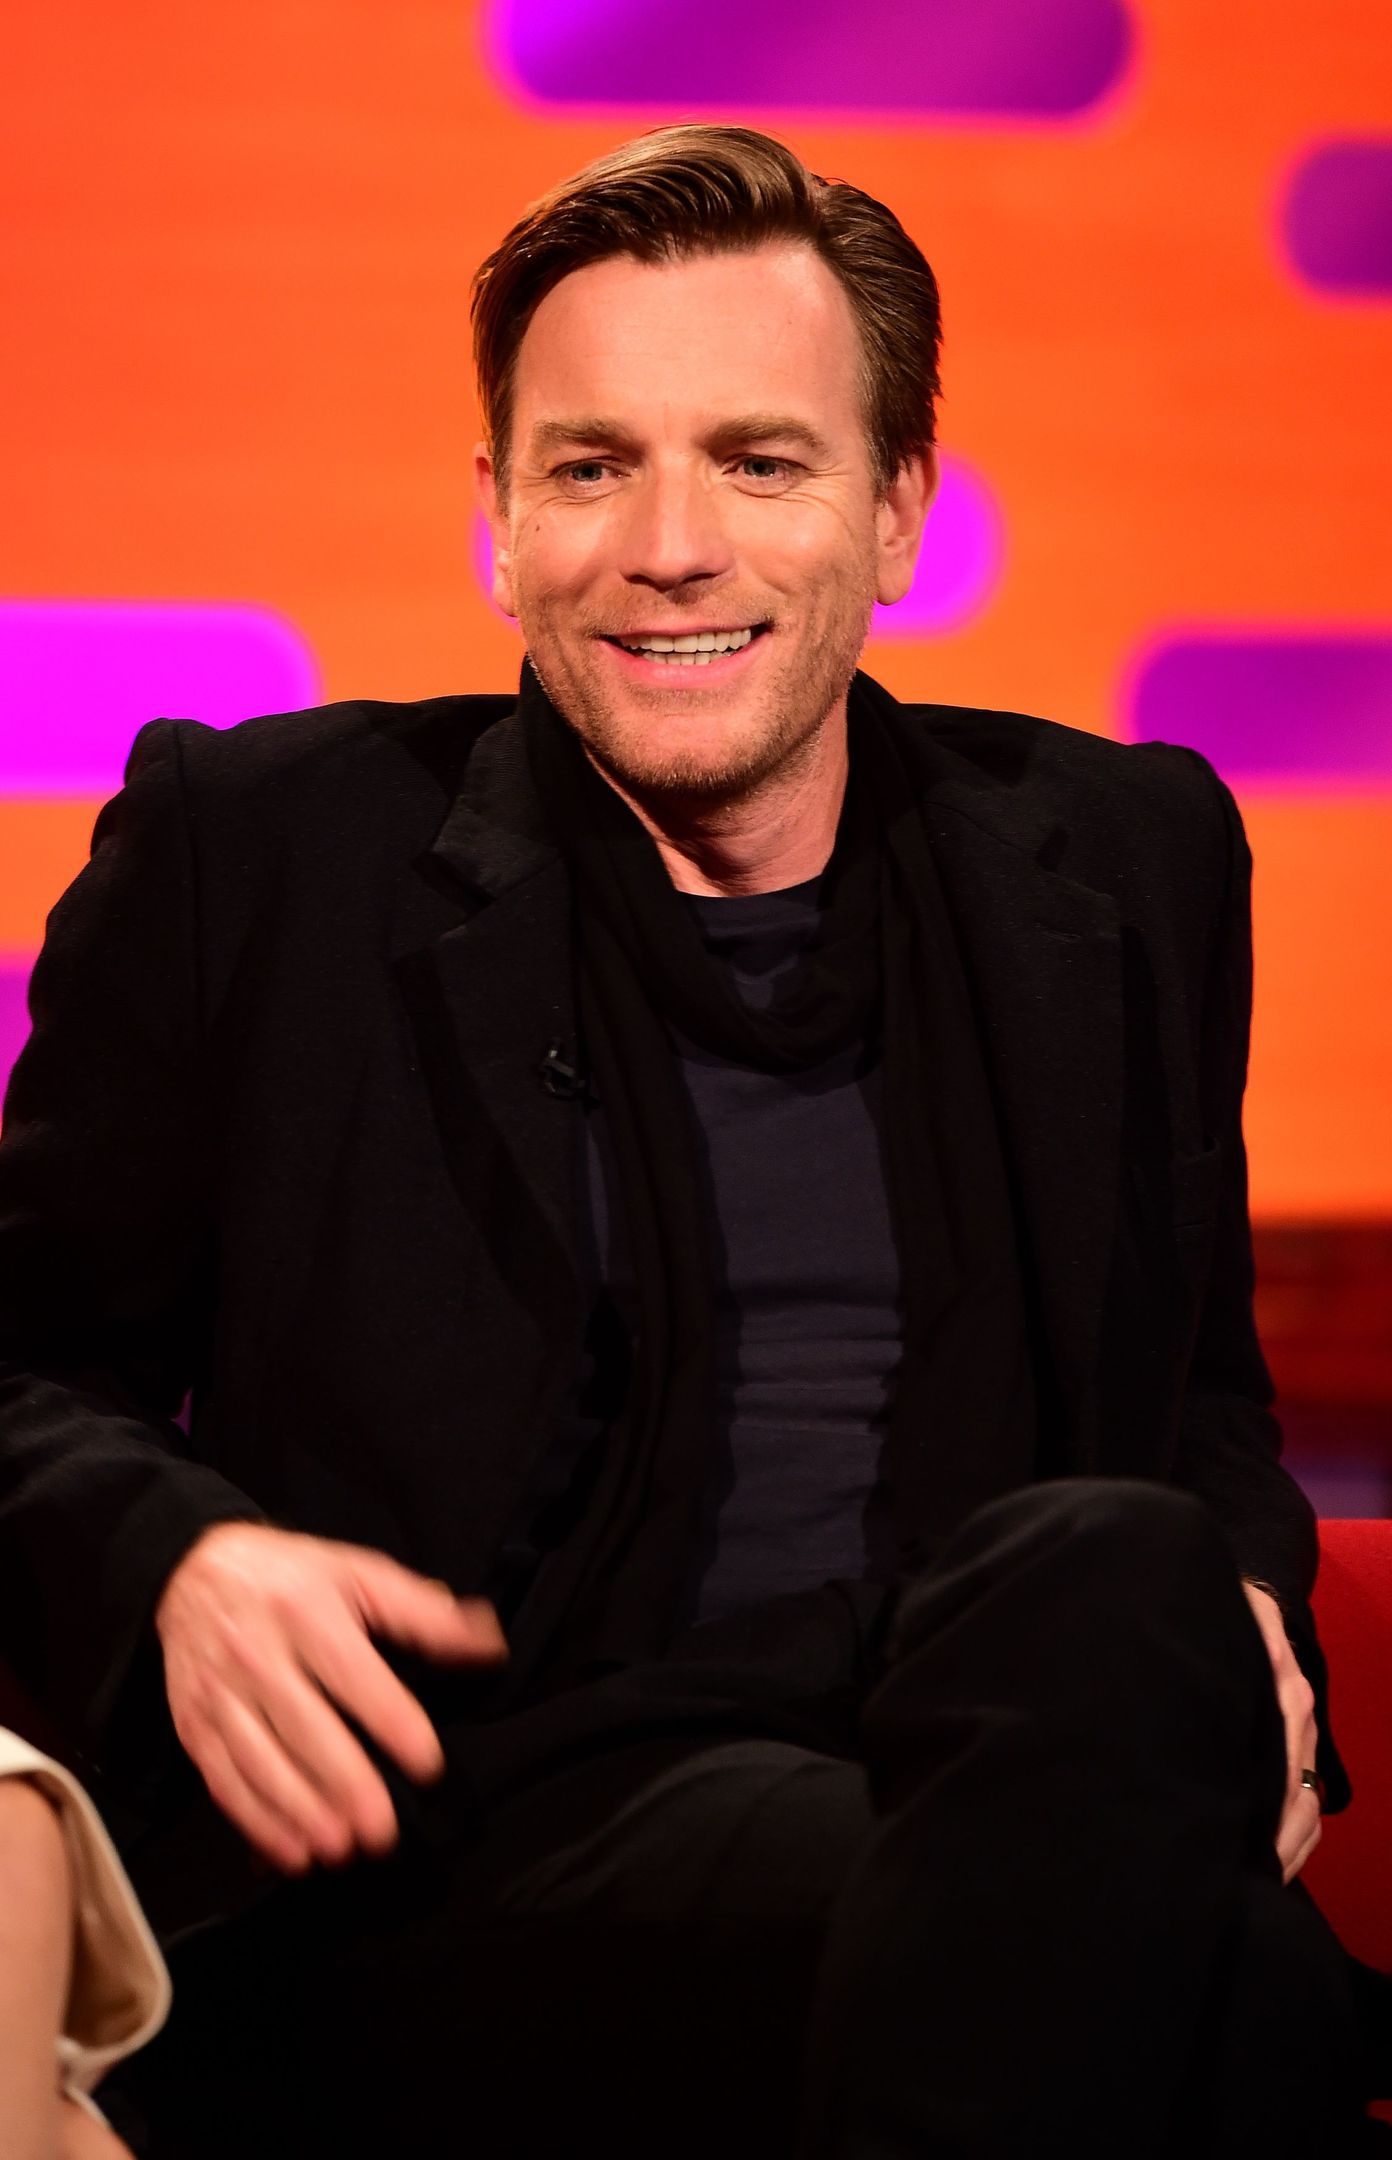 Ewan McGregor during the filming of the Graham Norton Show (Ian West/PA)